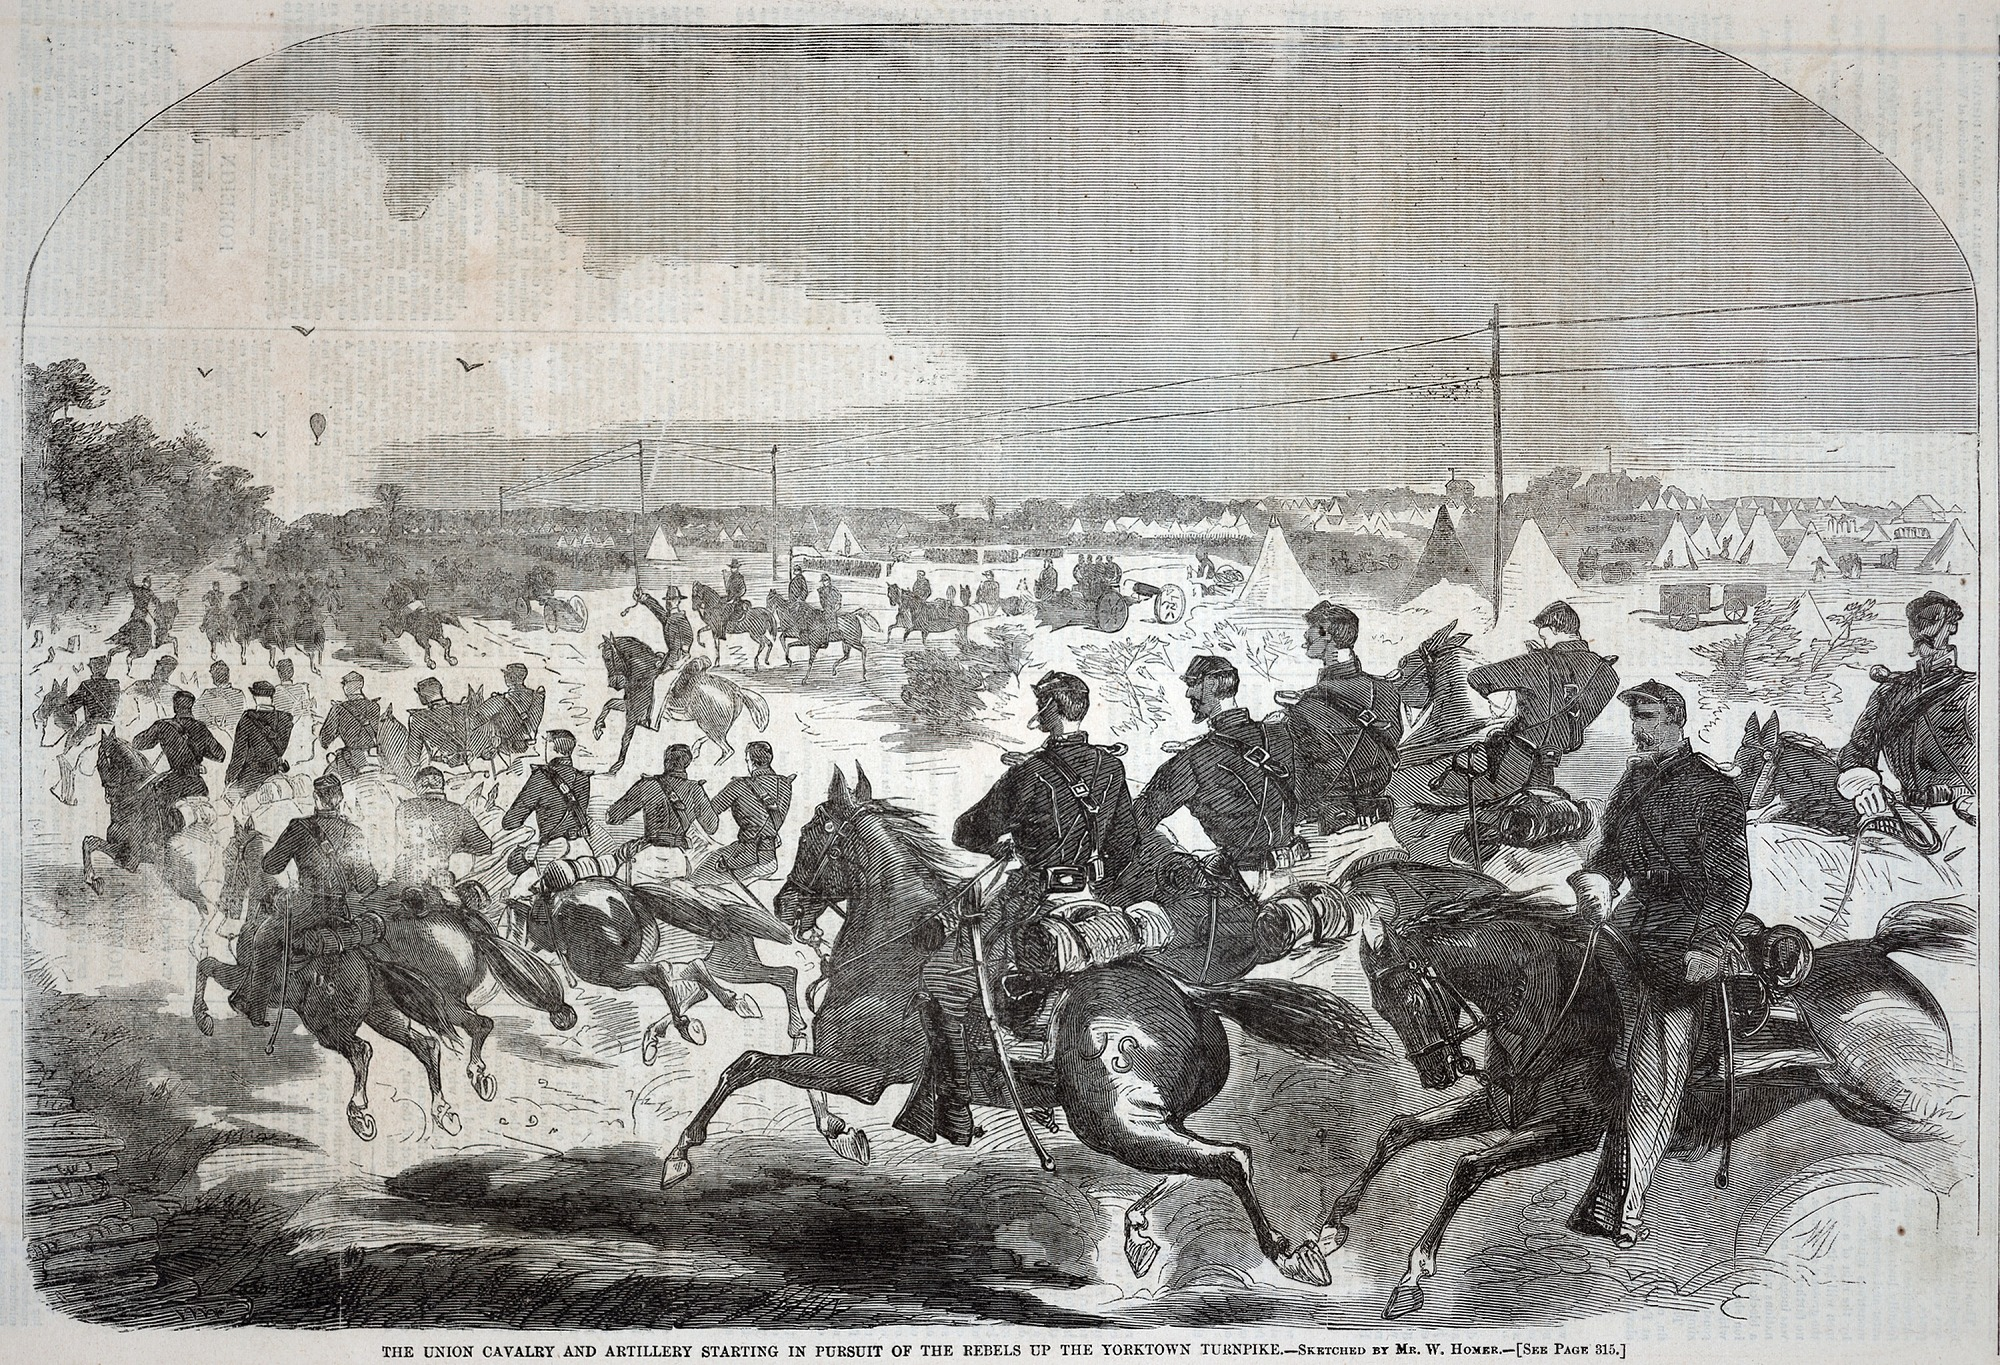 The Union Cavalry and Artillery Starting in Pursuit of the Rebels up the Yorktown Turnpike, from Harper